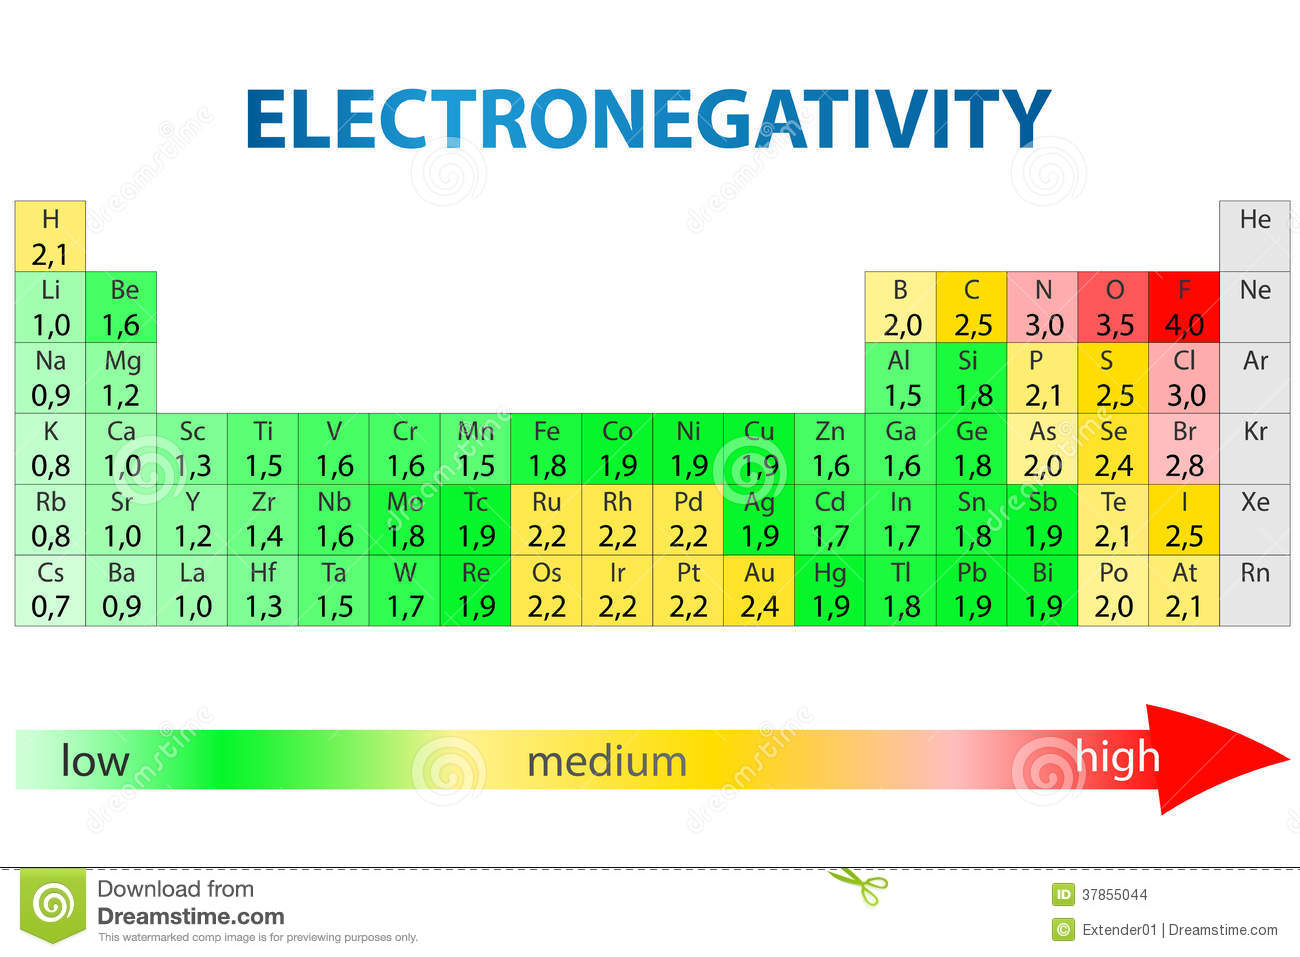 http://www.dreamstime.com/stock-images-electronegativity-periodic-table-image37855044